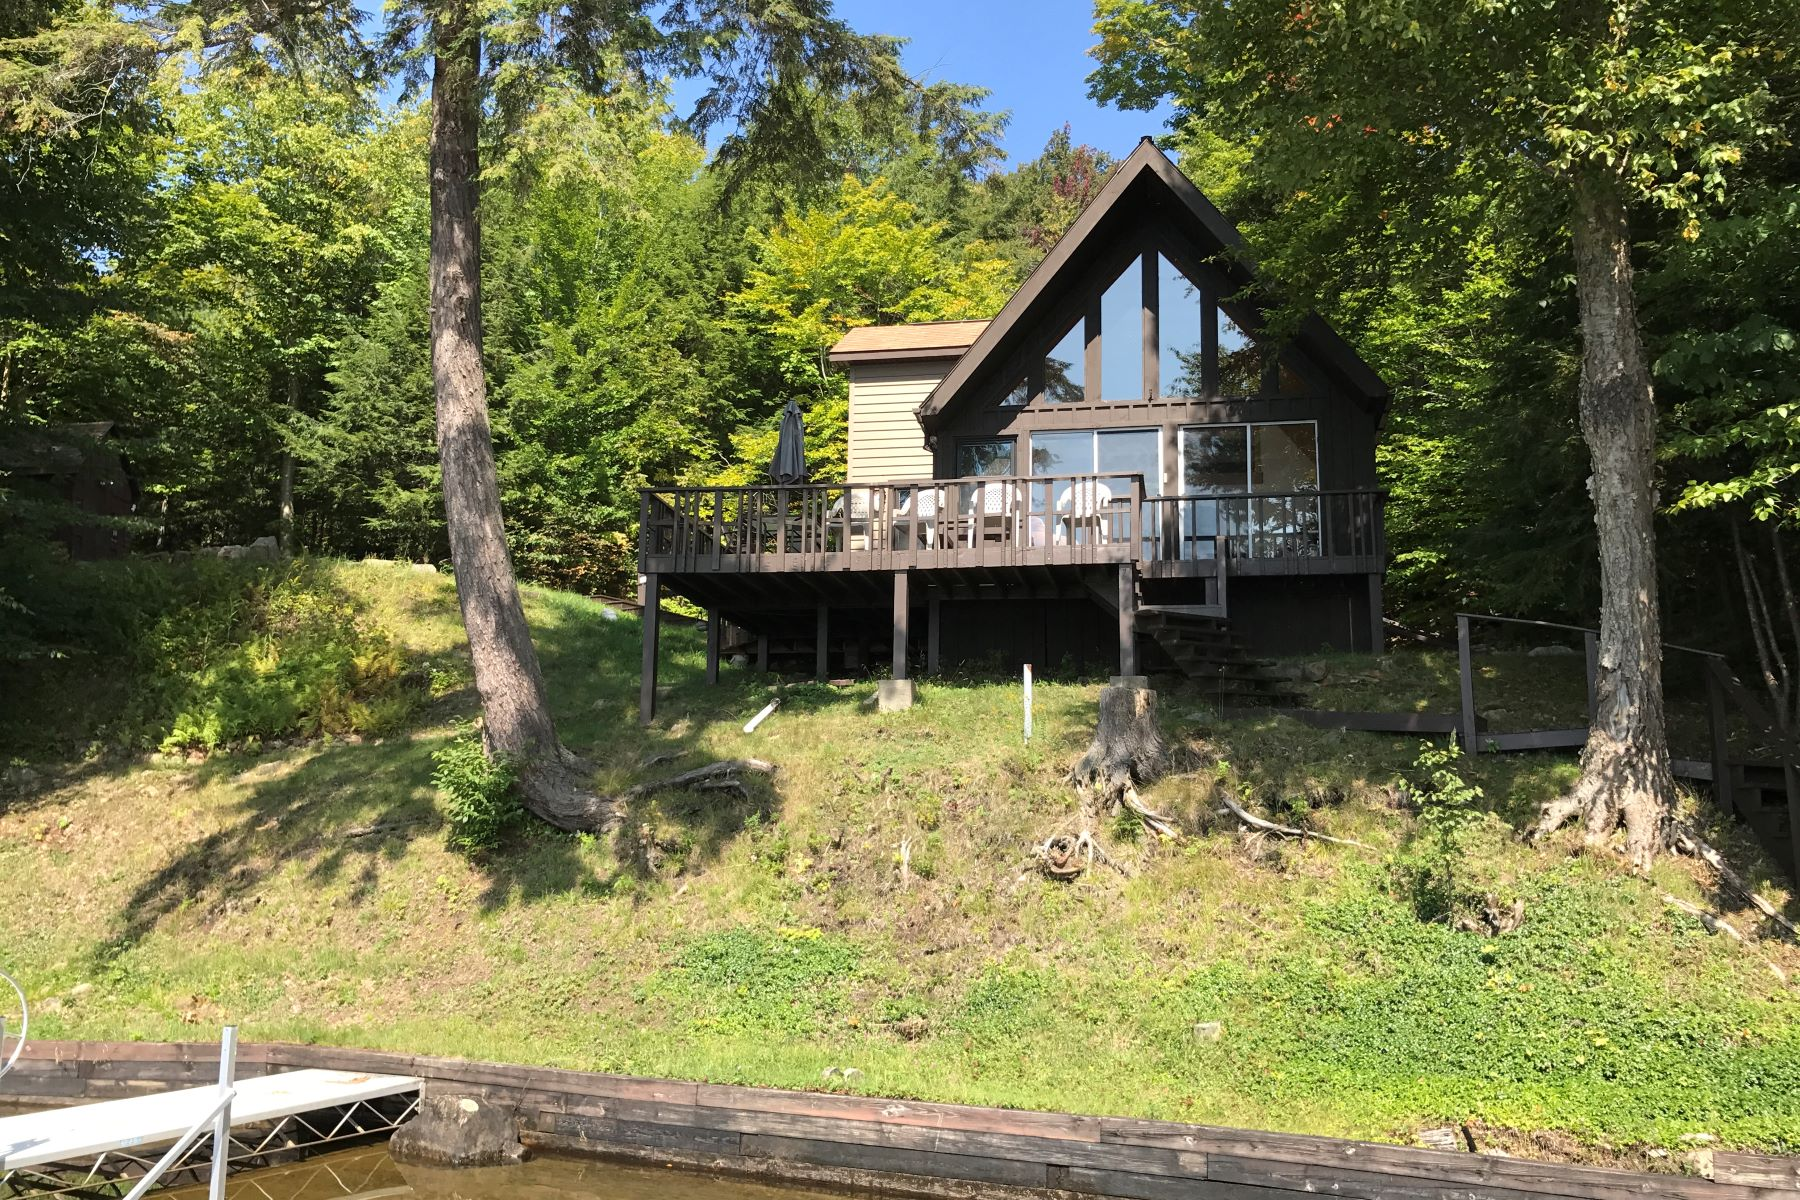 Single Family Home for Sale at Sun Drenched Views 4842 State Route 28 Old Forge, New York 13420 United States